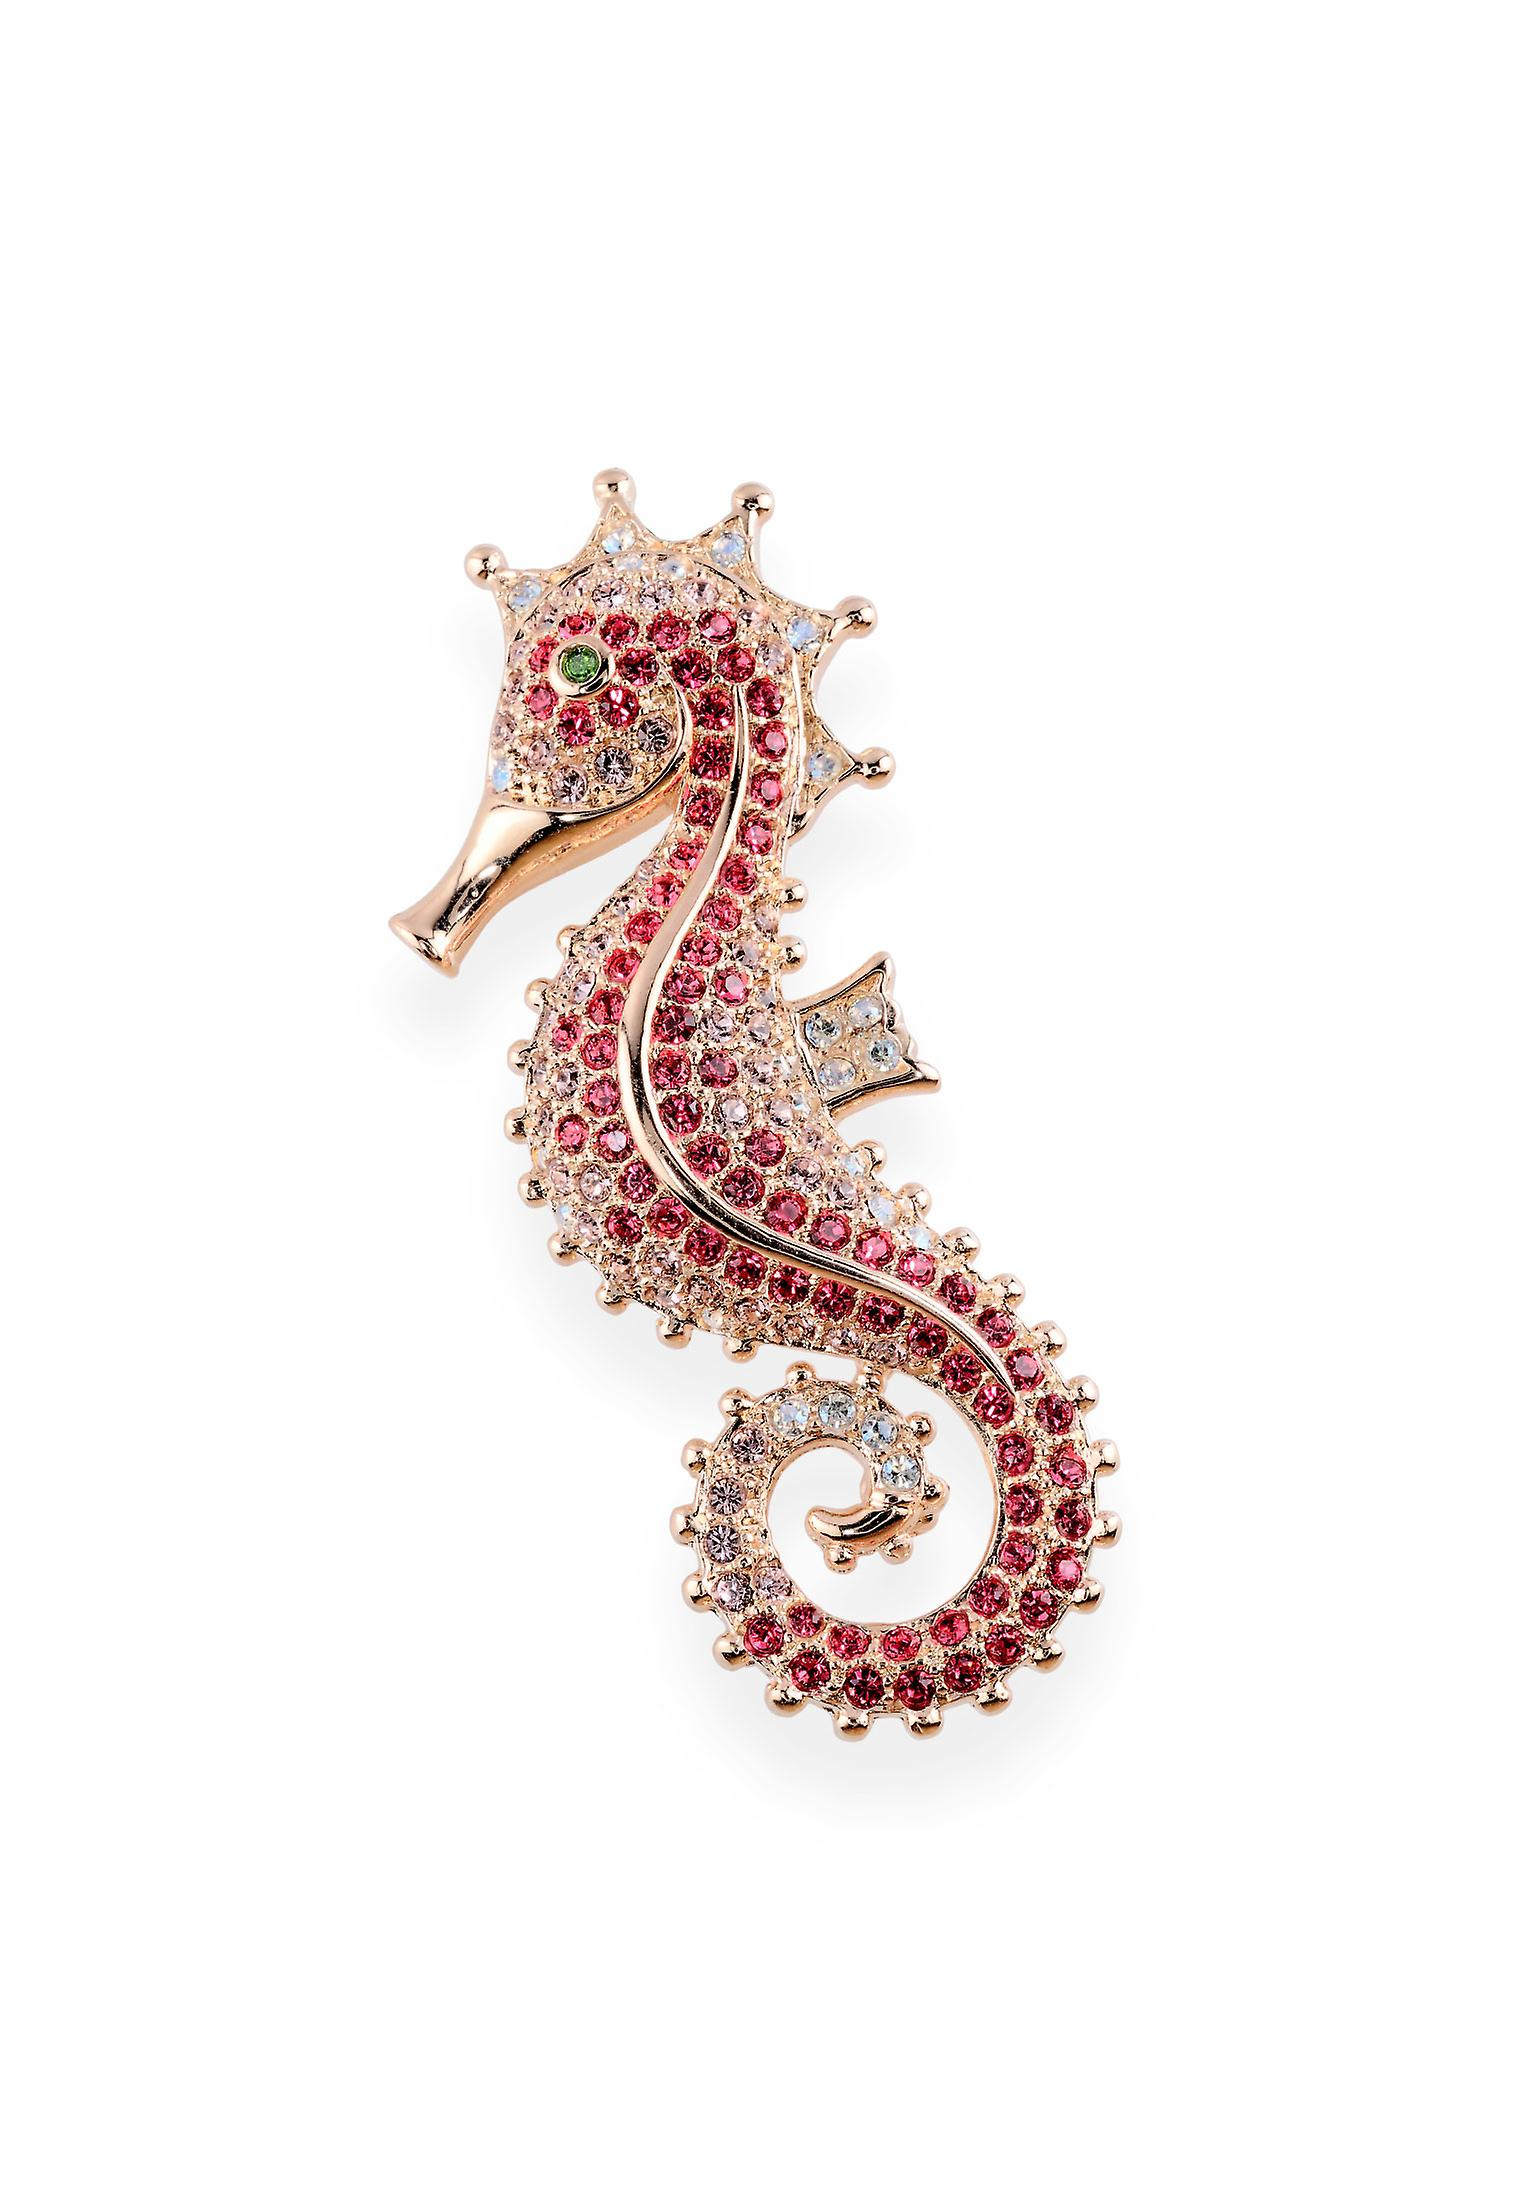 Multicolor brooch with crystals from Swarovski 7084